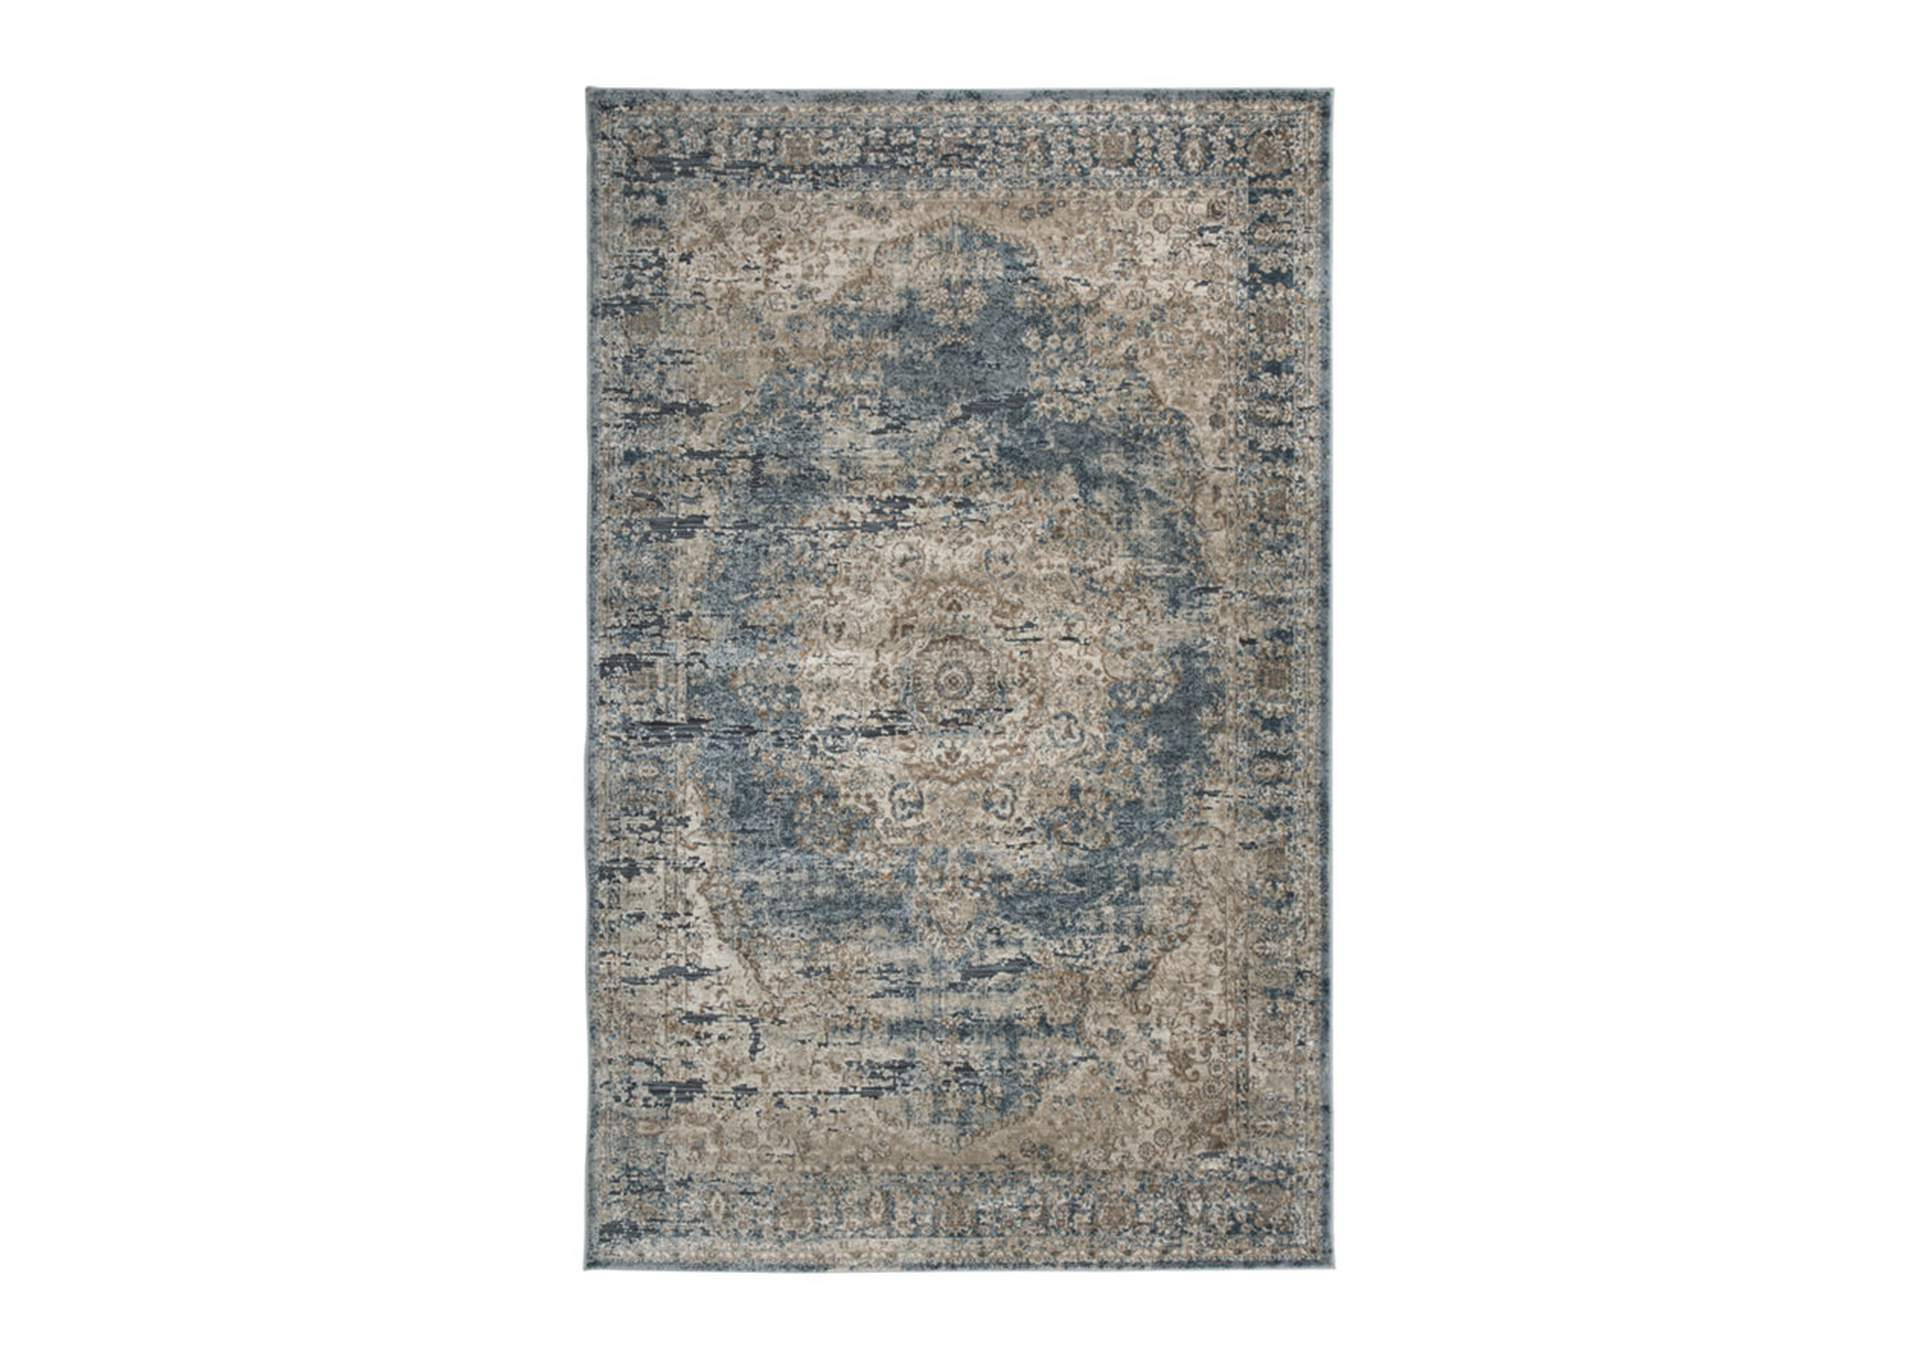 South Blue/Tan Large Rug,Direct To Consumer Express